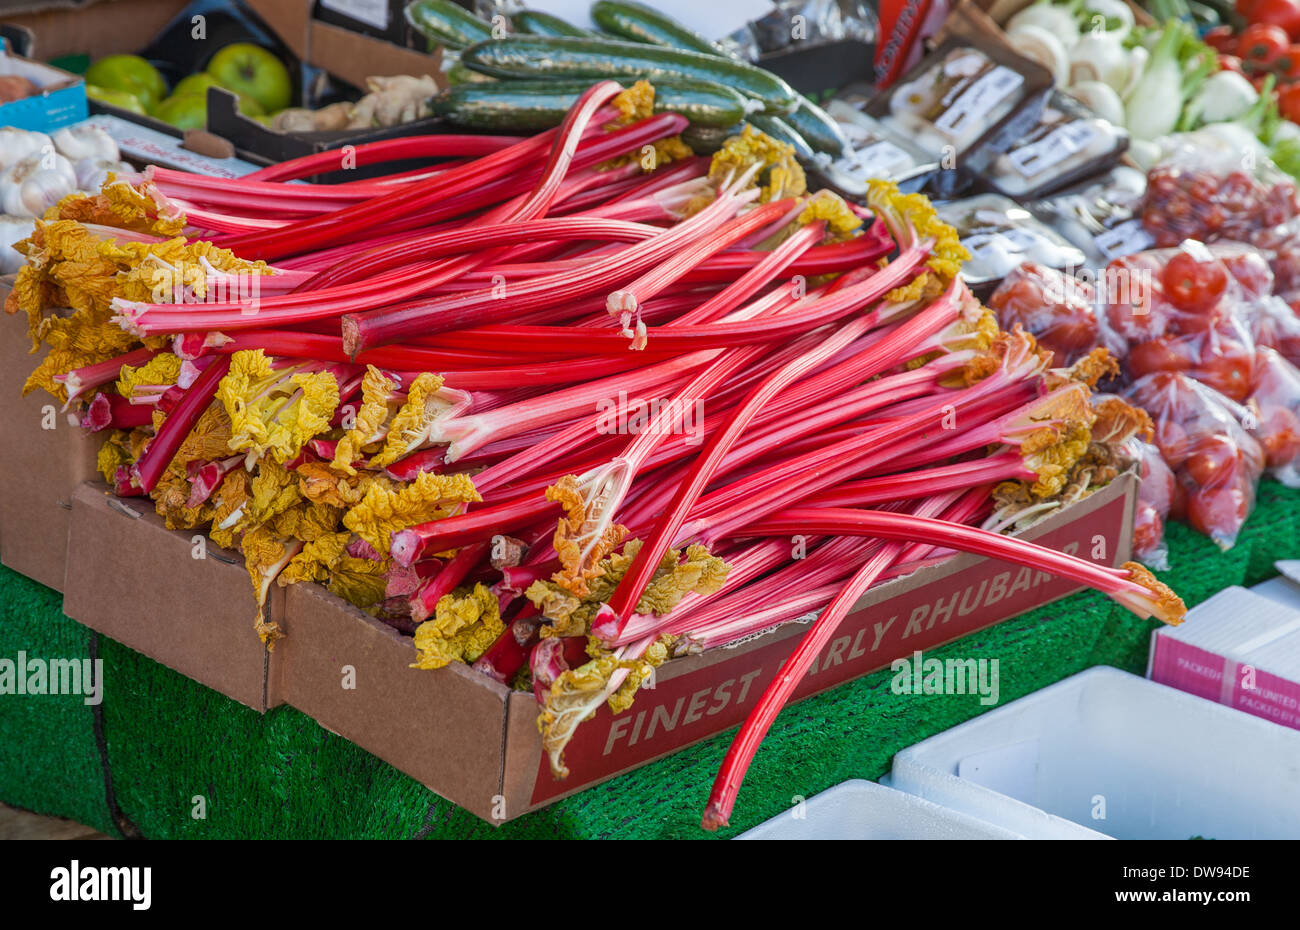 Rhubarb on a market stall - Stock Image